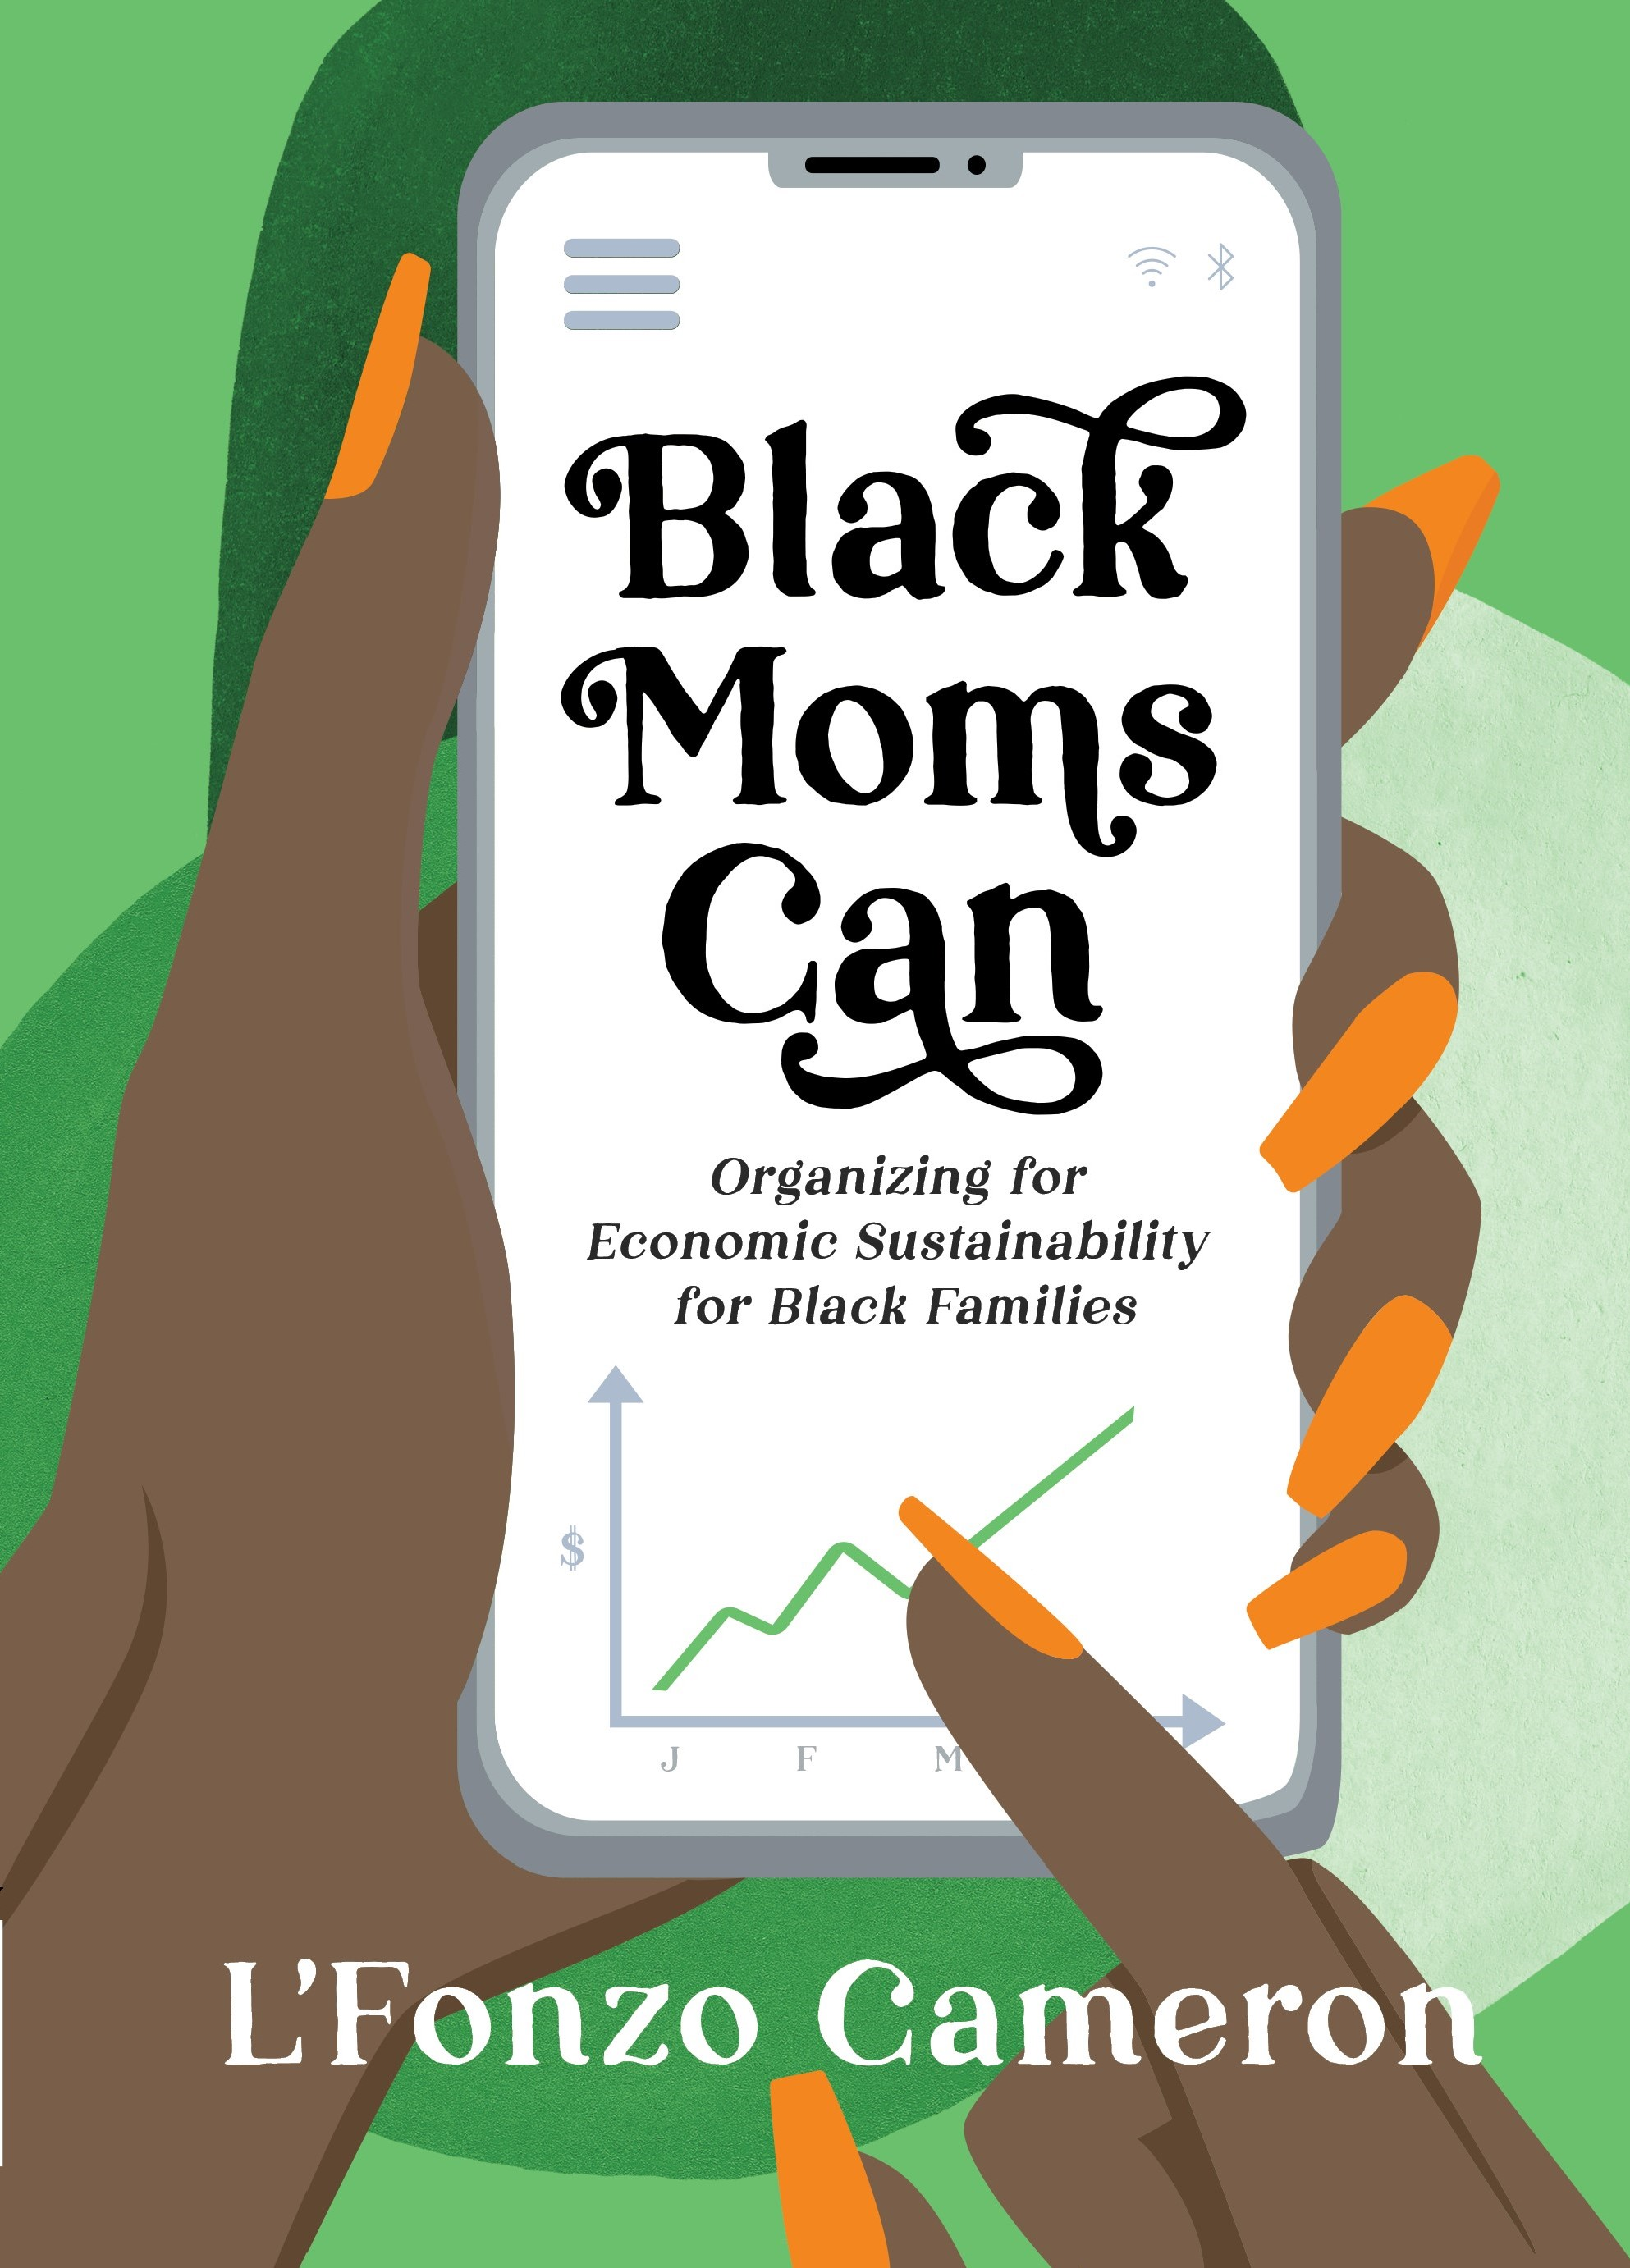 """Community Advancement Initiative, Inc. and Calling Card Books Announce the Release of """"Black Moms Can: Organizing for Economic Empowerment"""" by L'Fonzo Cameron"""